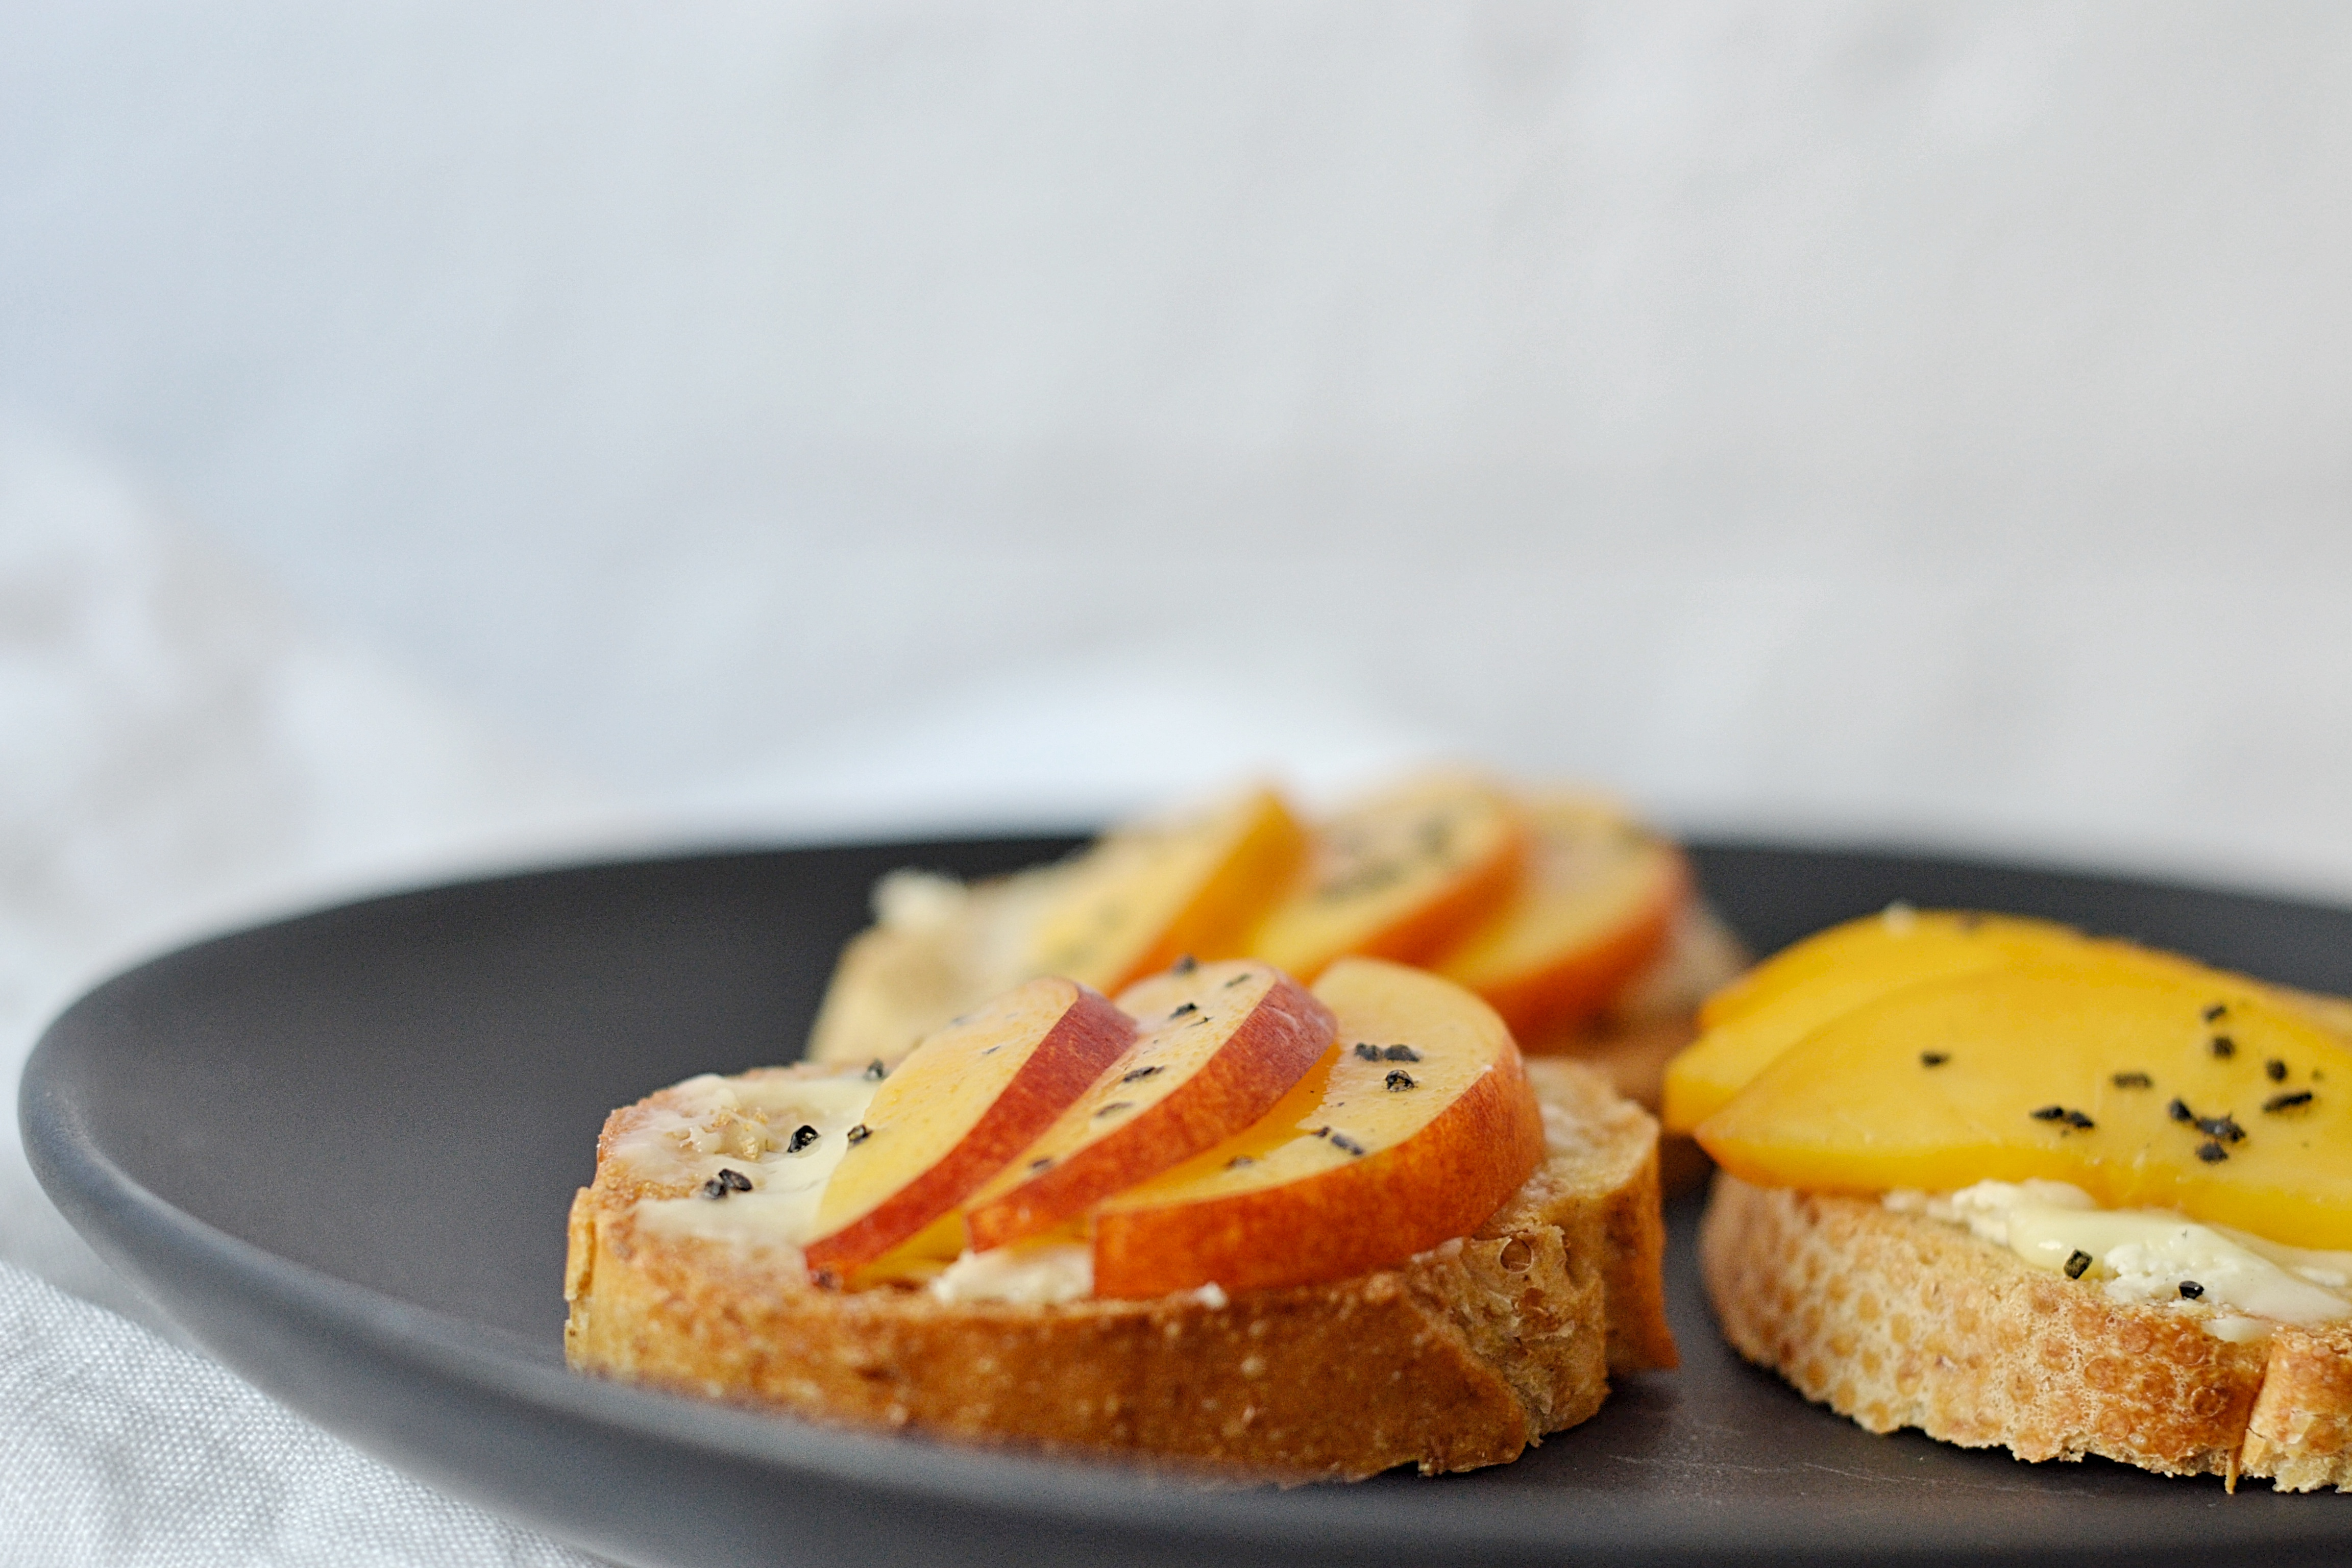 French Baguette with Cheese & Peaches